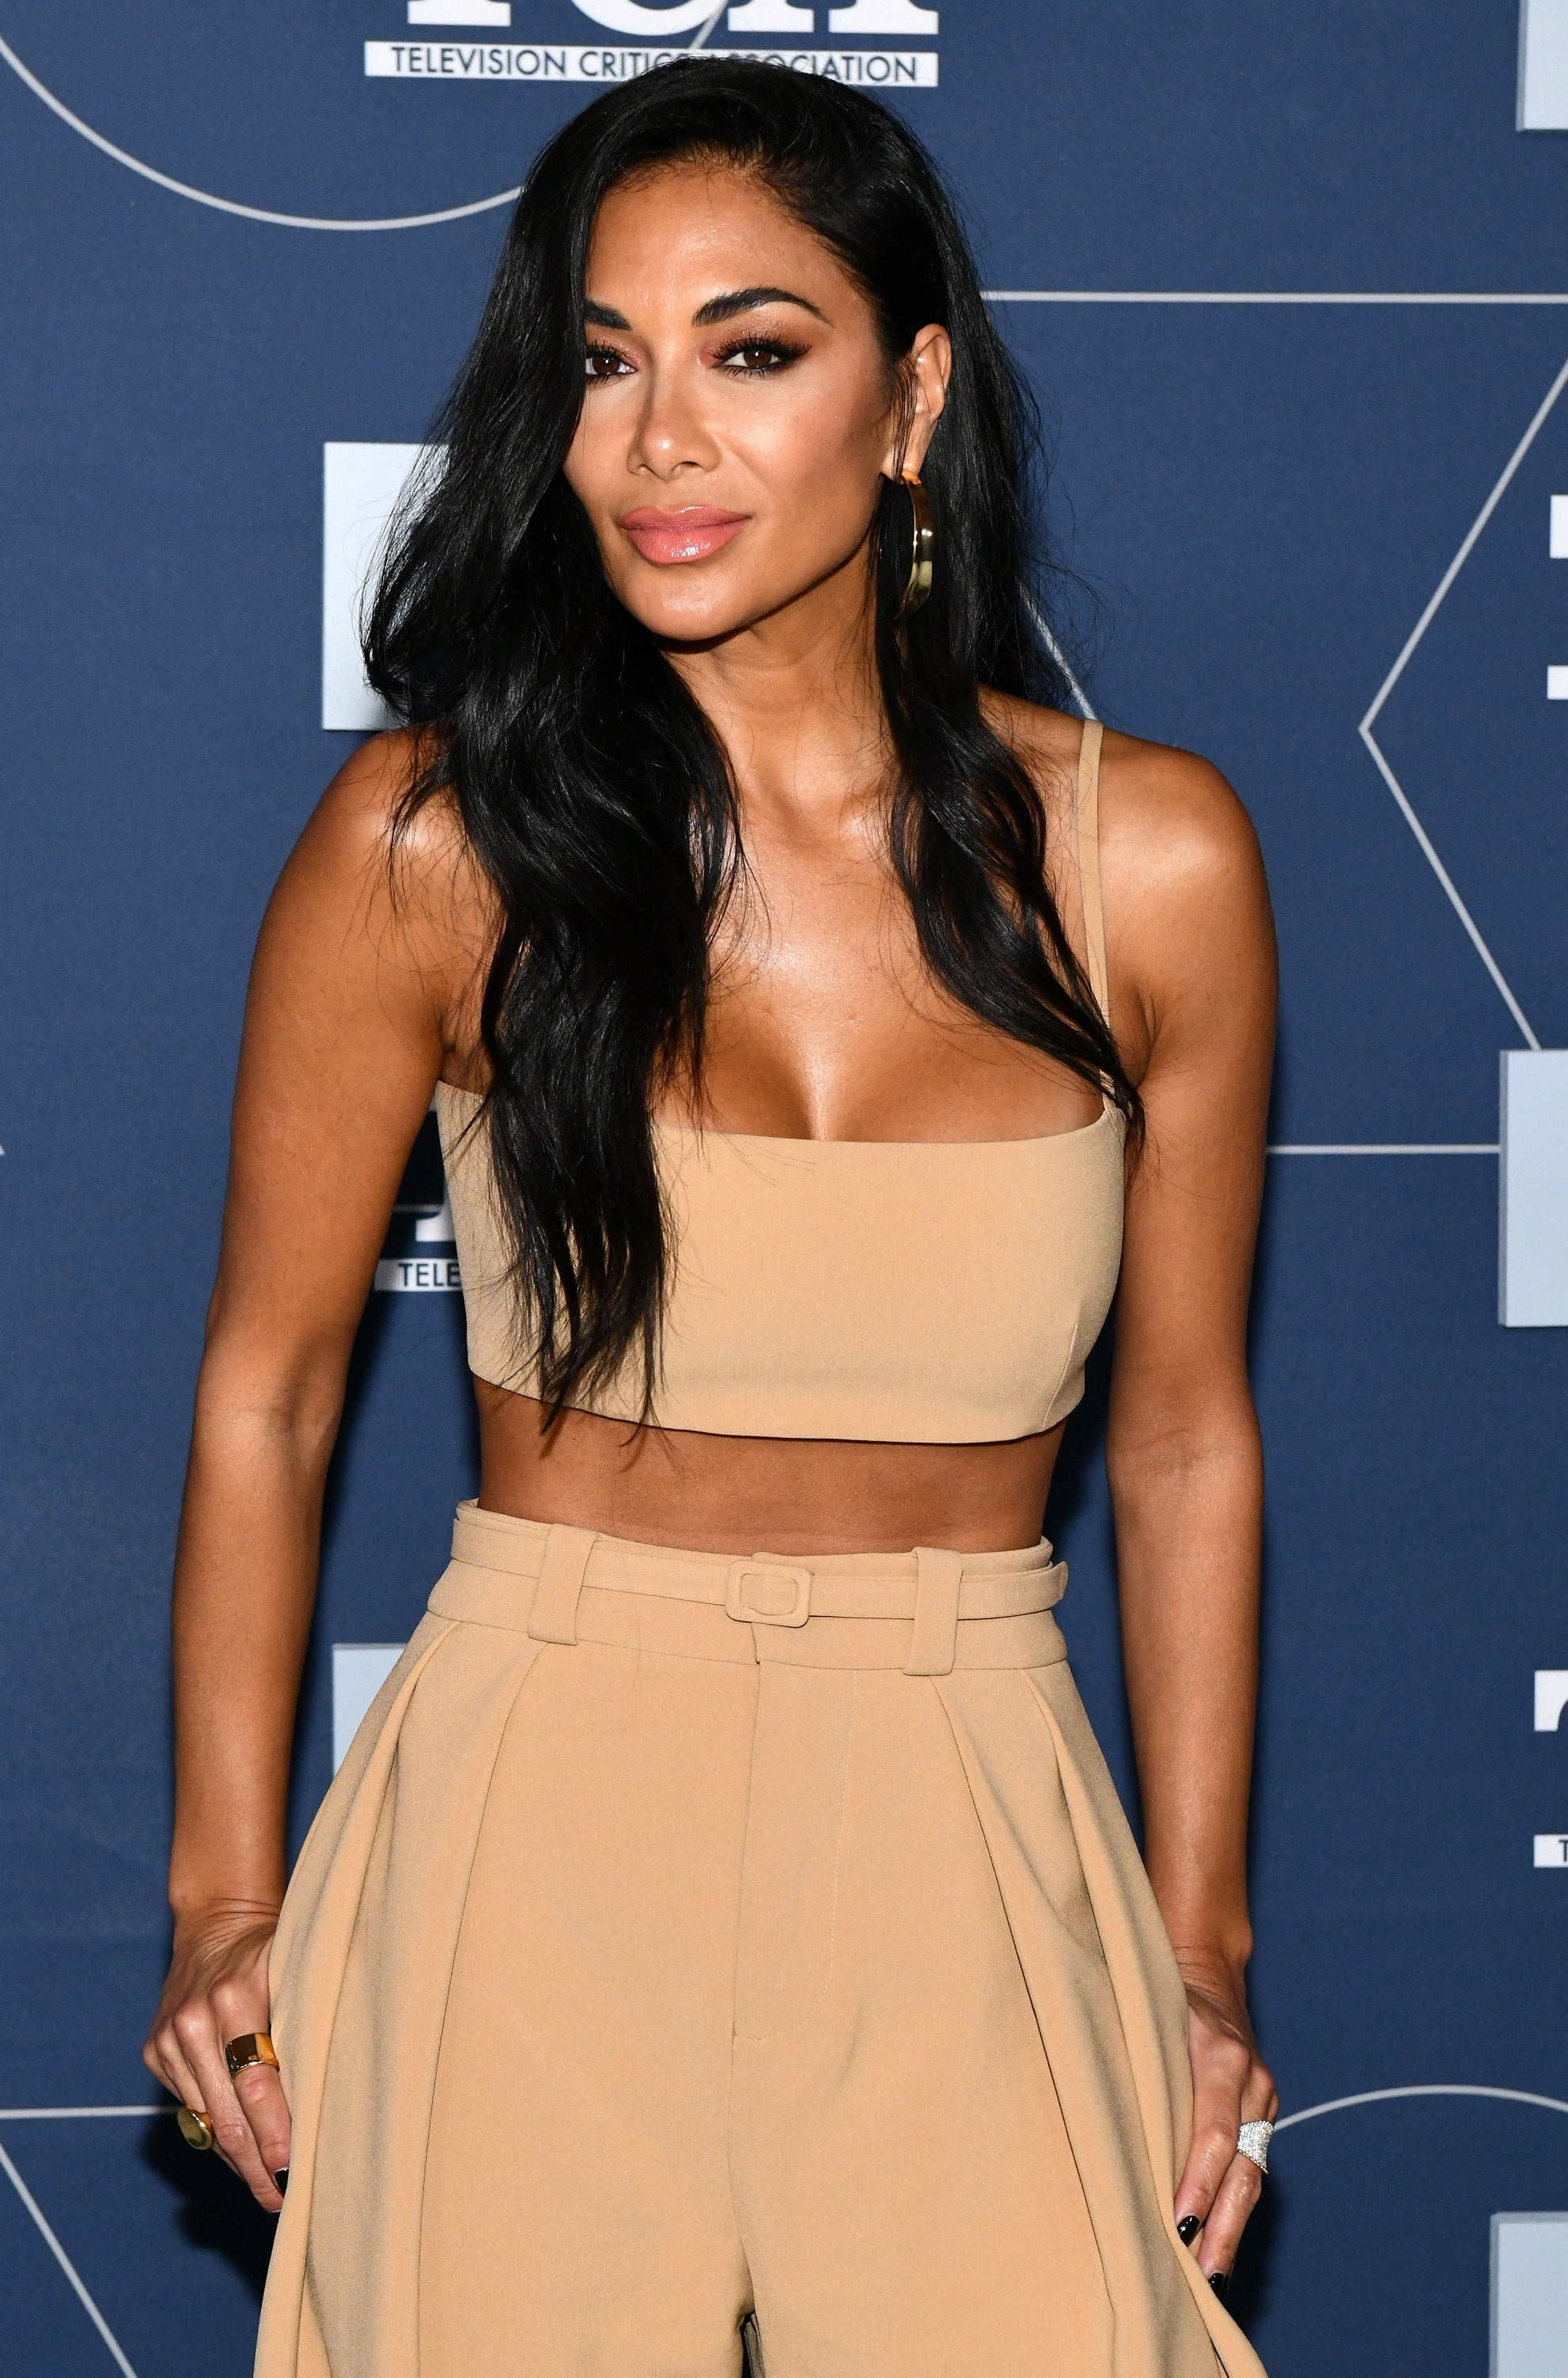 Nicole Scherzinger with her hair down and parted to the side, wearing a cropped nude top and matching pants